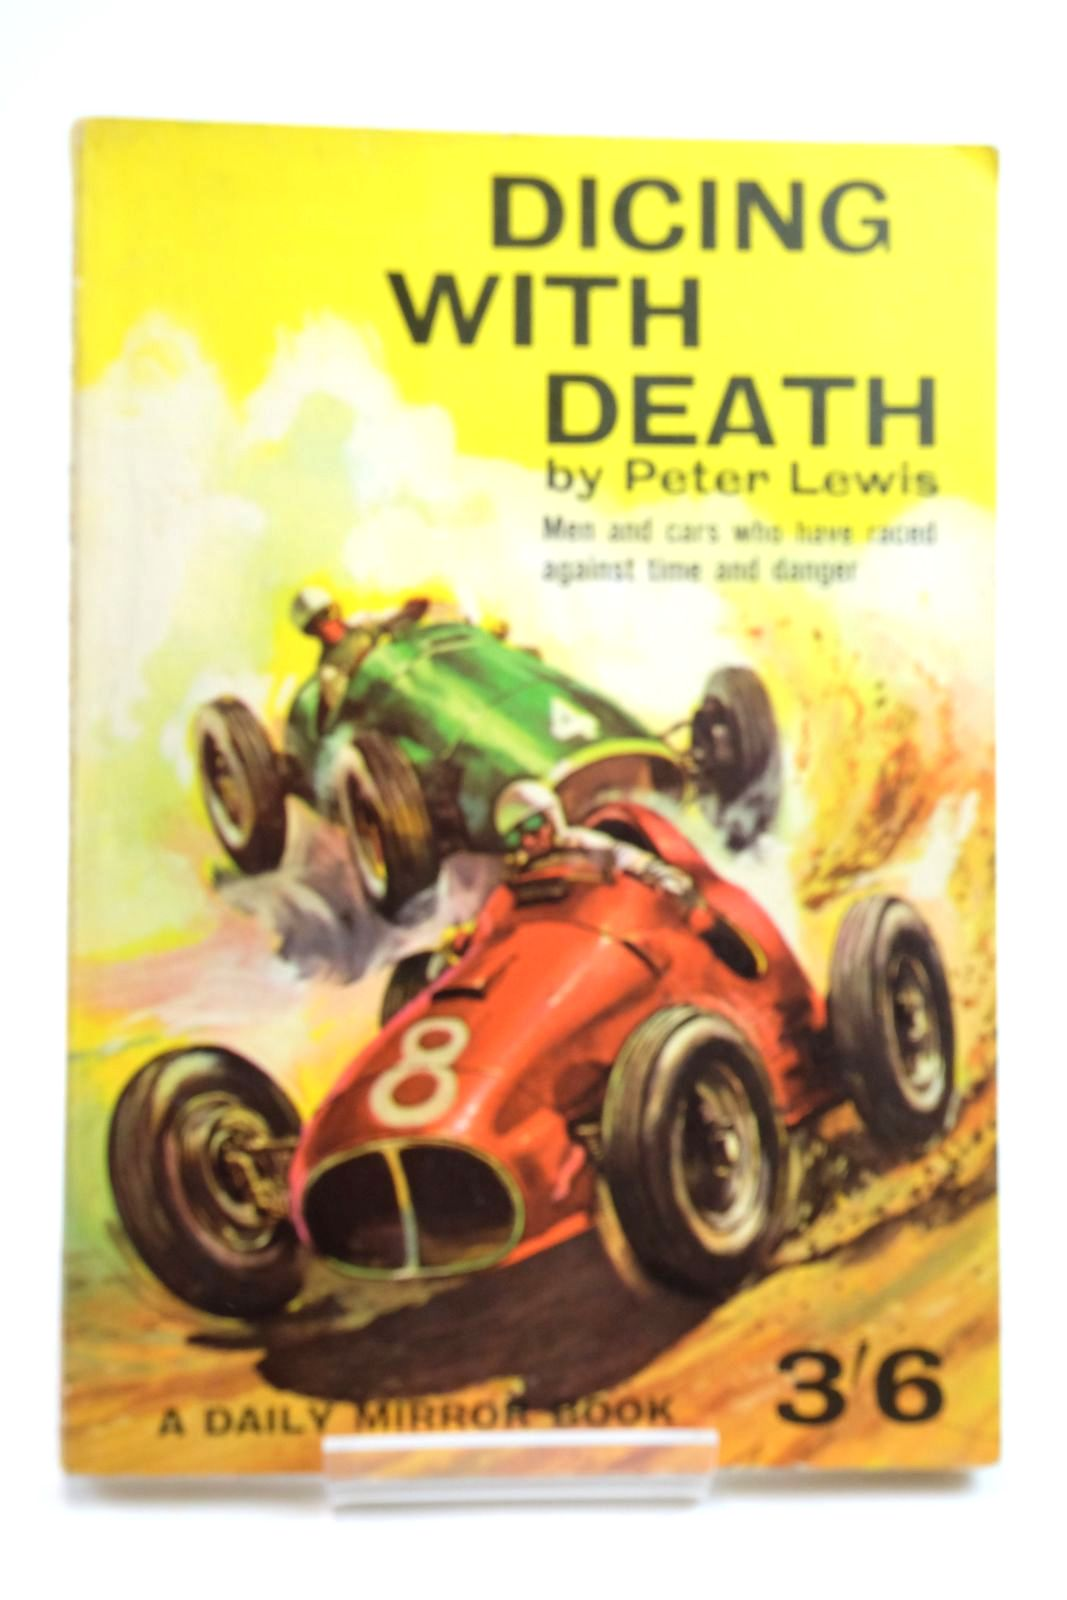 Photo of DICING WITH DEATH written by Lewis, Peter illustrated by Steward, Glen published by Daily Mirror Books (STOCK CODE: 2134625)  for sale by Stella & Rose's Books